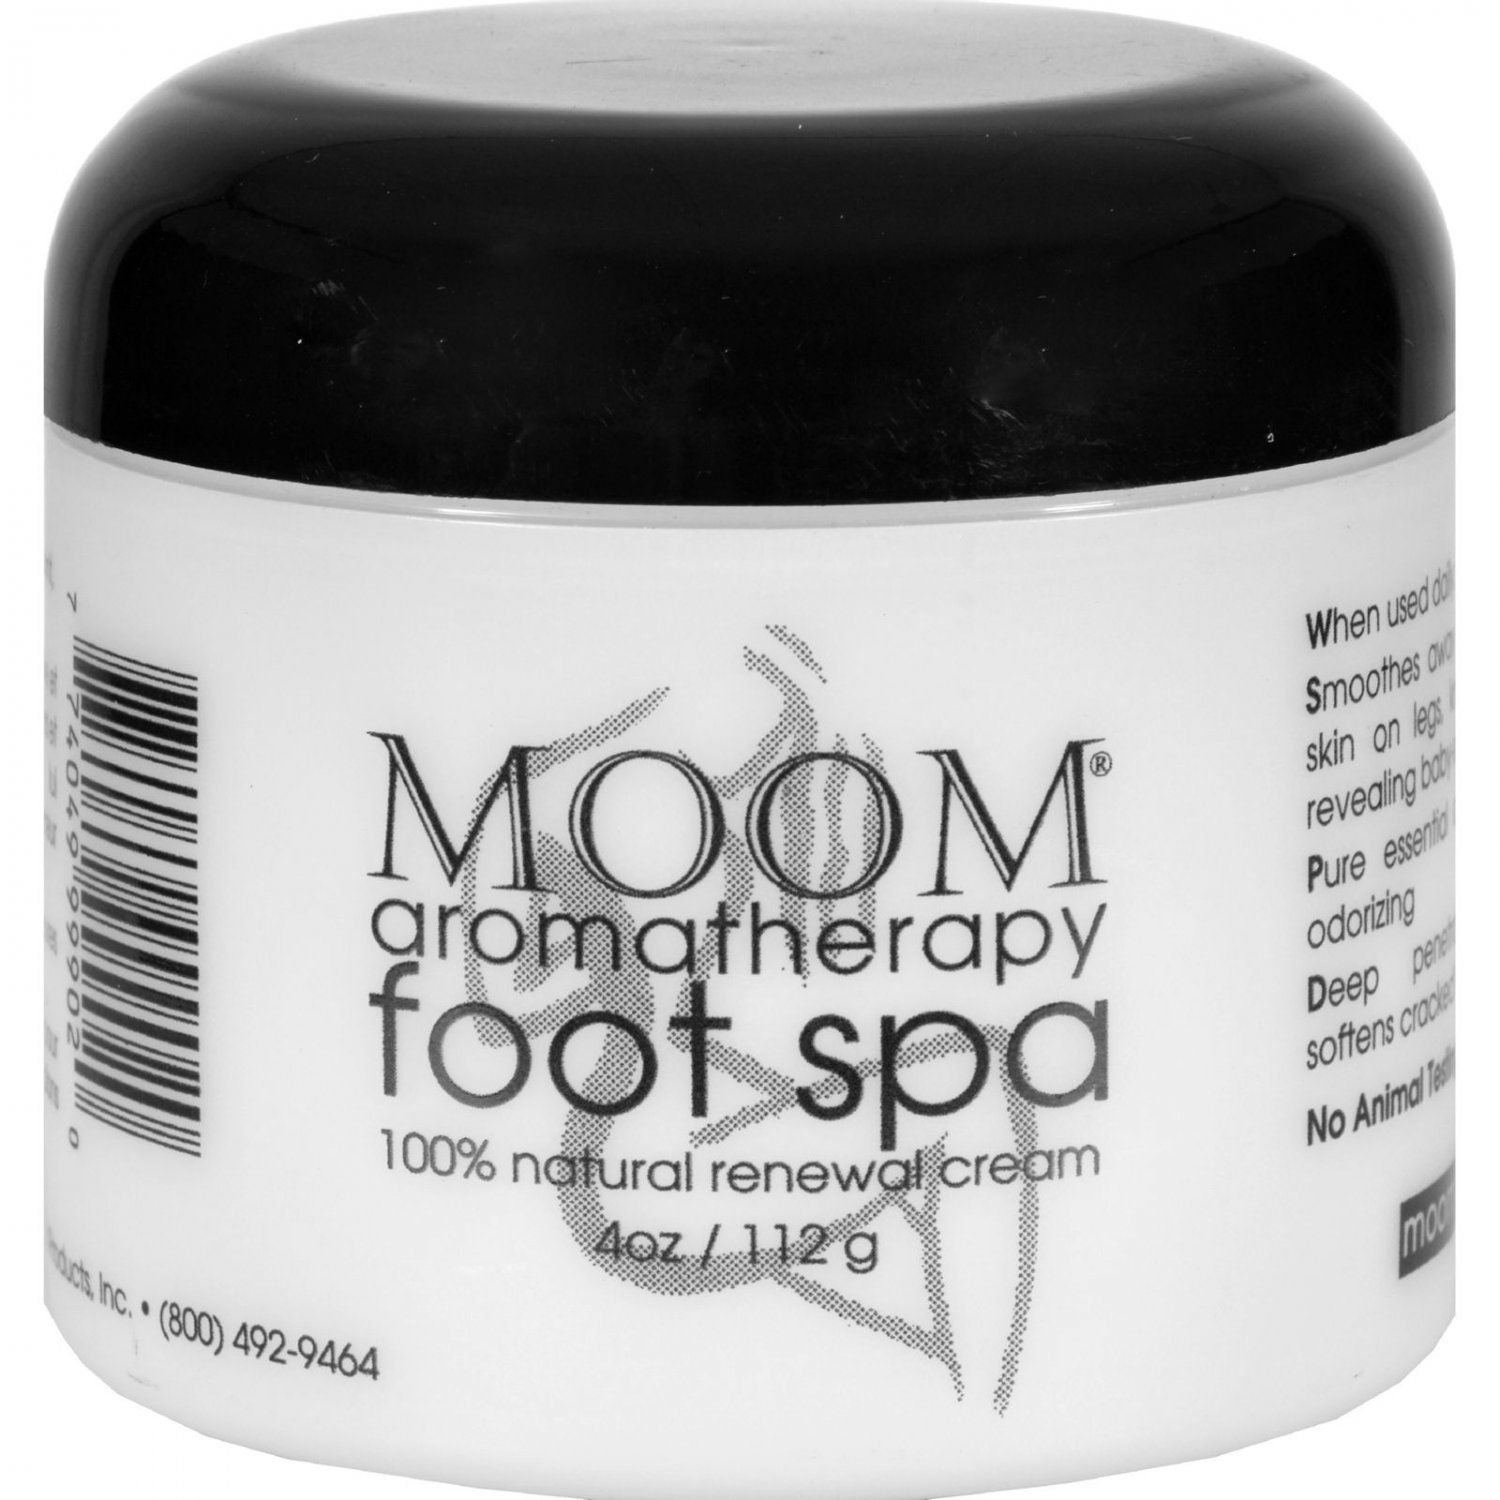 Moom Aromatherapy Foot Spa - 4 oz